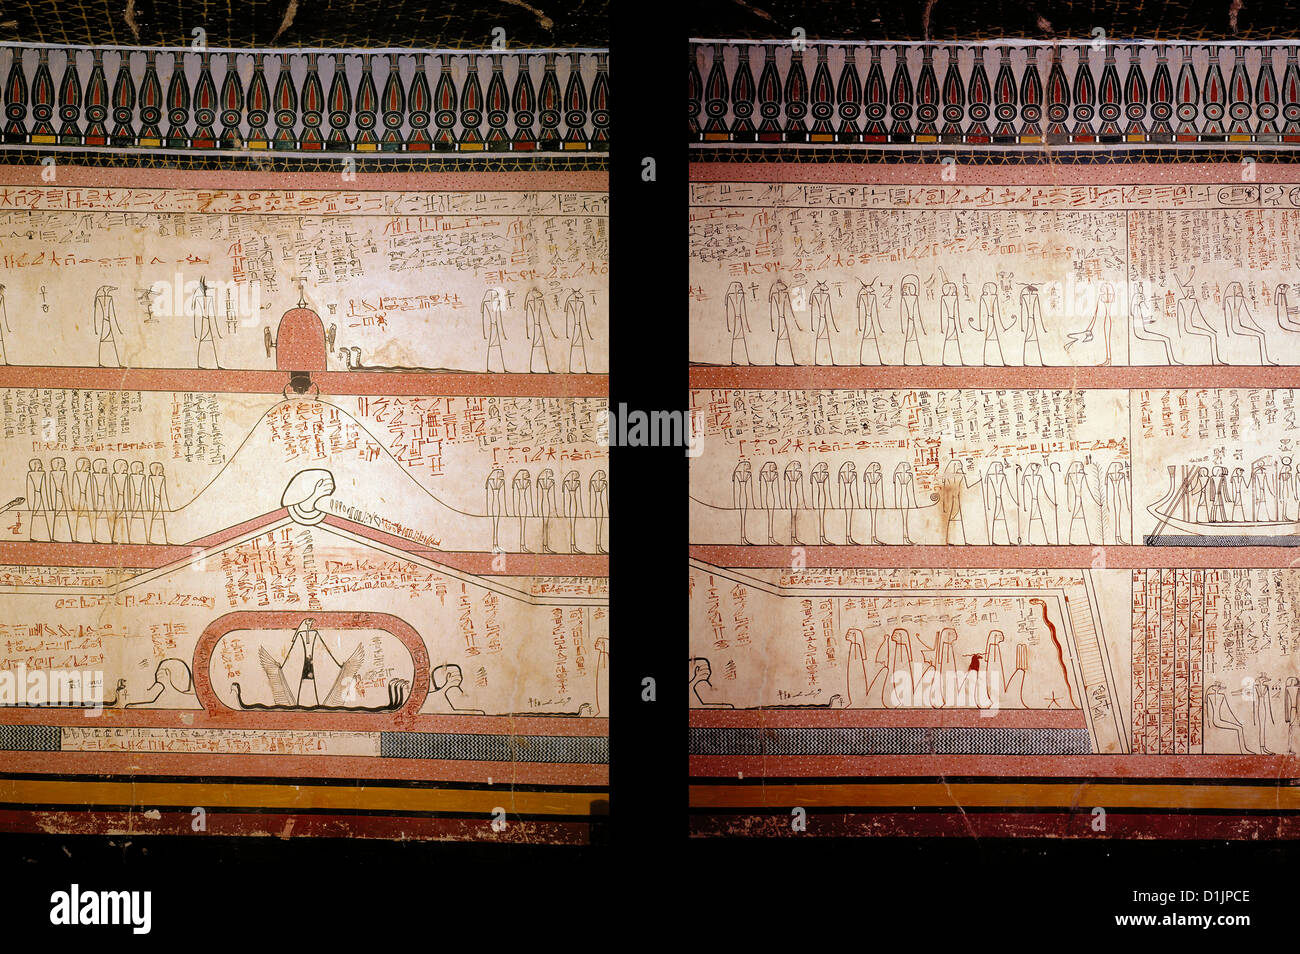 essays on thutmose iii Hatshepsut, from queen to pharaoh / accessible essays that present current scholarship in this period of egypt's regent for her stepson-nephew king thutmose iii.